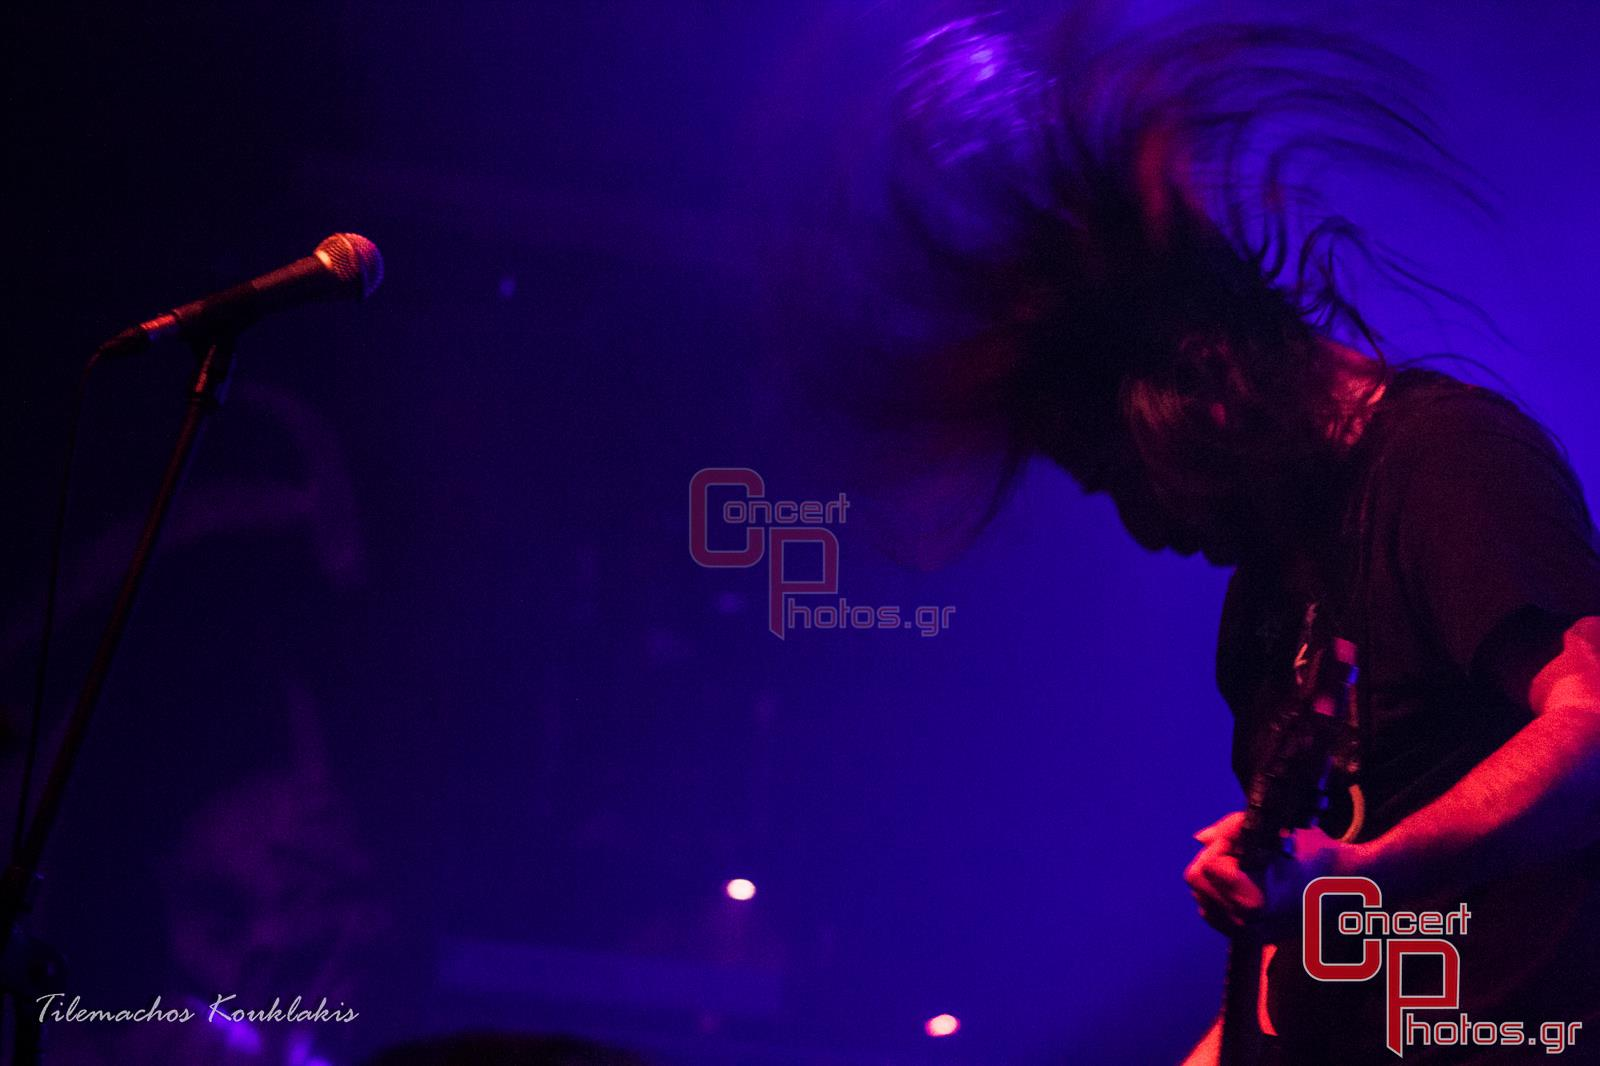 Rotting Christ-Rotting Christ photographer:  - ConcertPhotos-5665